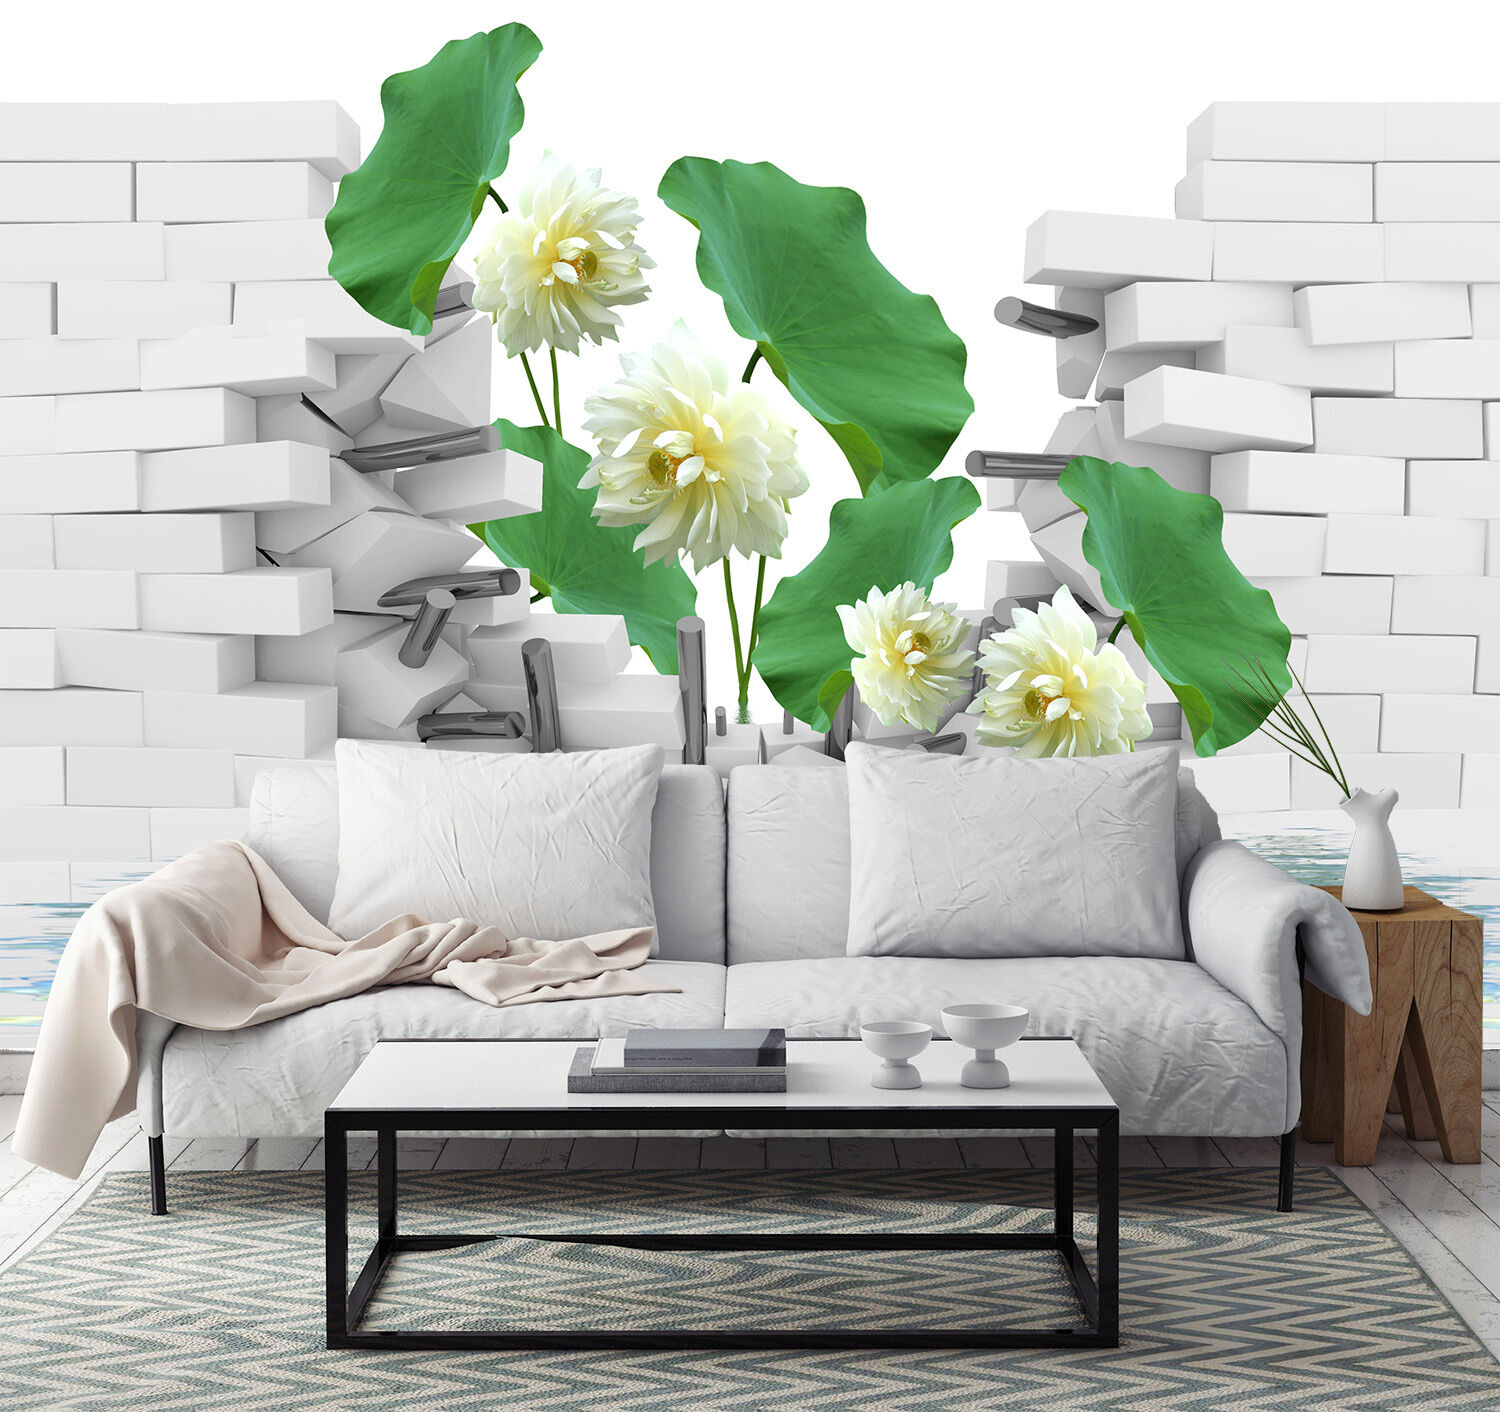 3D Weiß lotus 566 Wall Paper Print Wall Decal Deco Indoor Wall Murals